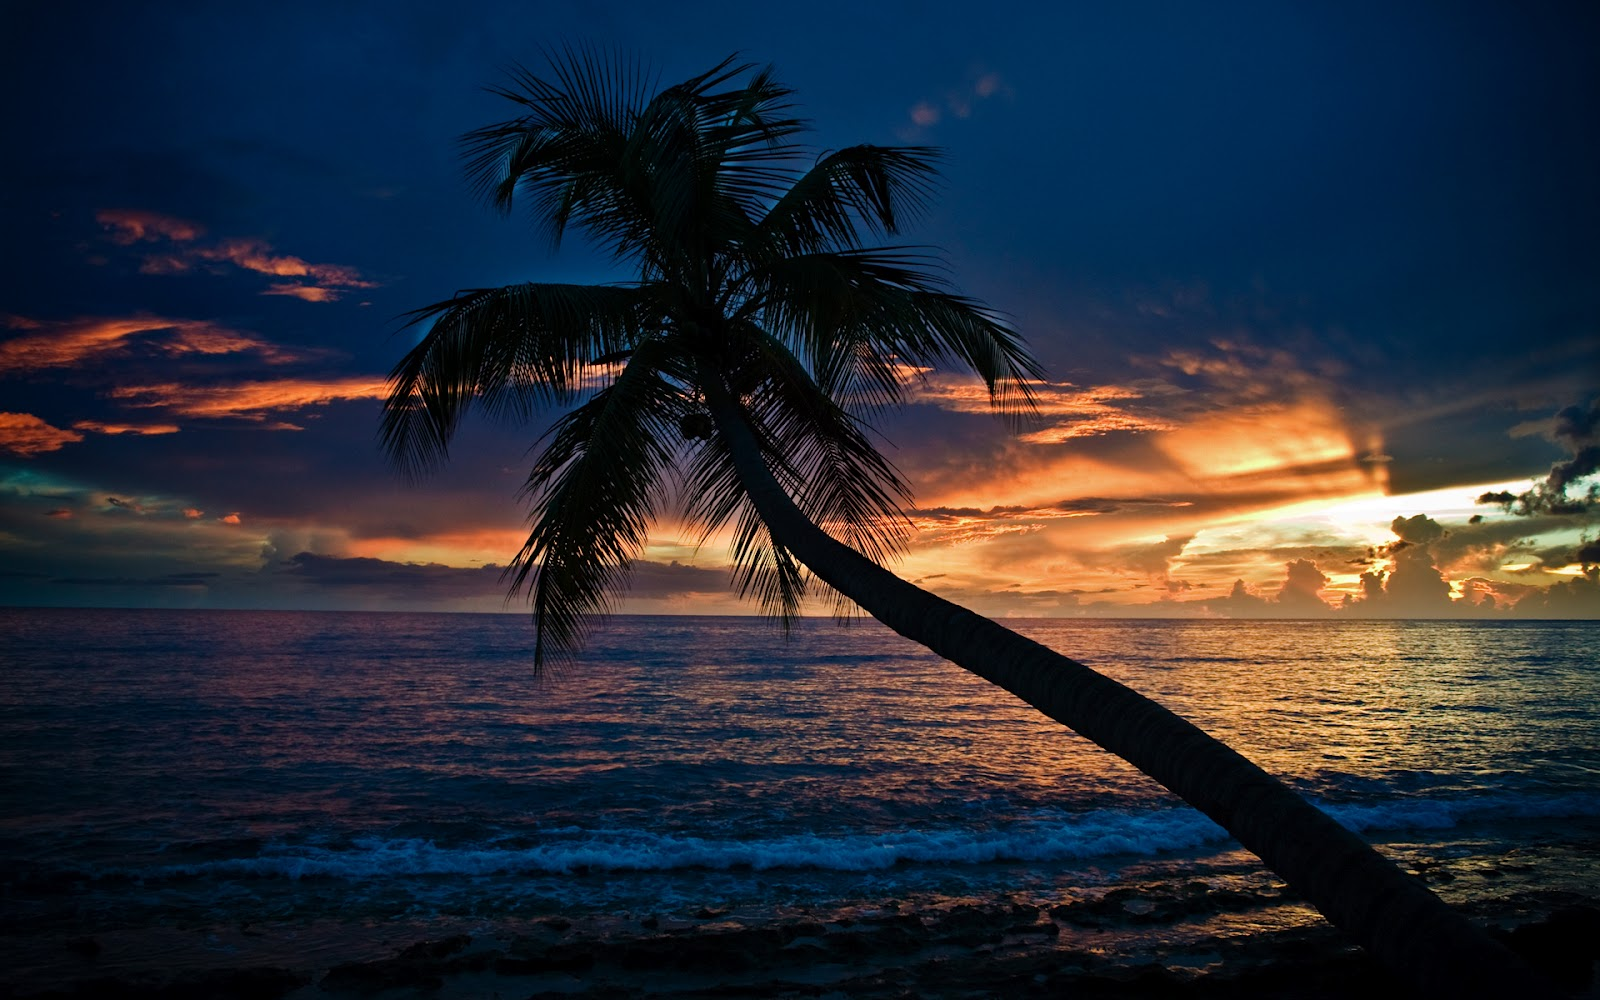 http://4.bp.blogspot.com/-q1I5wqFWUJk/T0KBSXprMNI/AAAAAAAAAzQ/wYrJzvfM_GM/s1600/coconut+tree+in+sea+HD+wallpaper.jpg